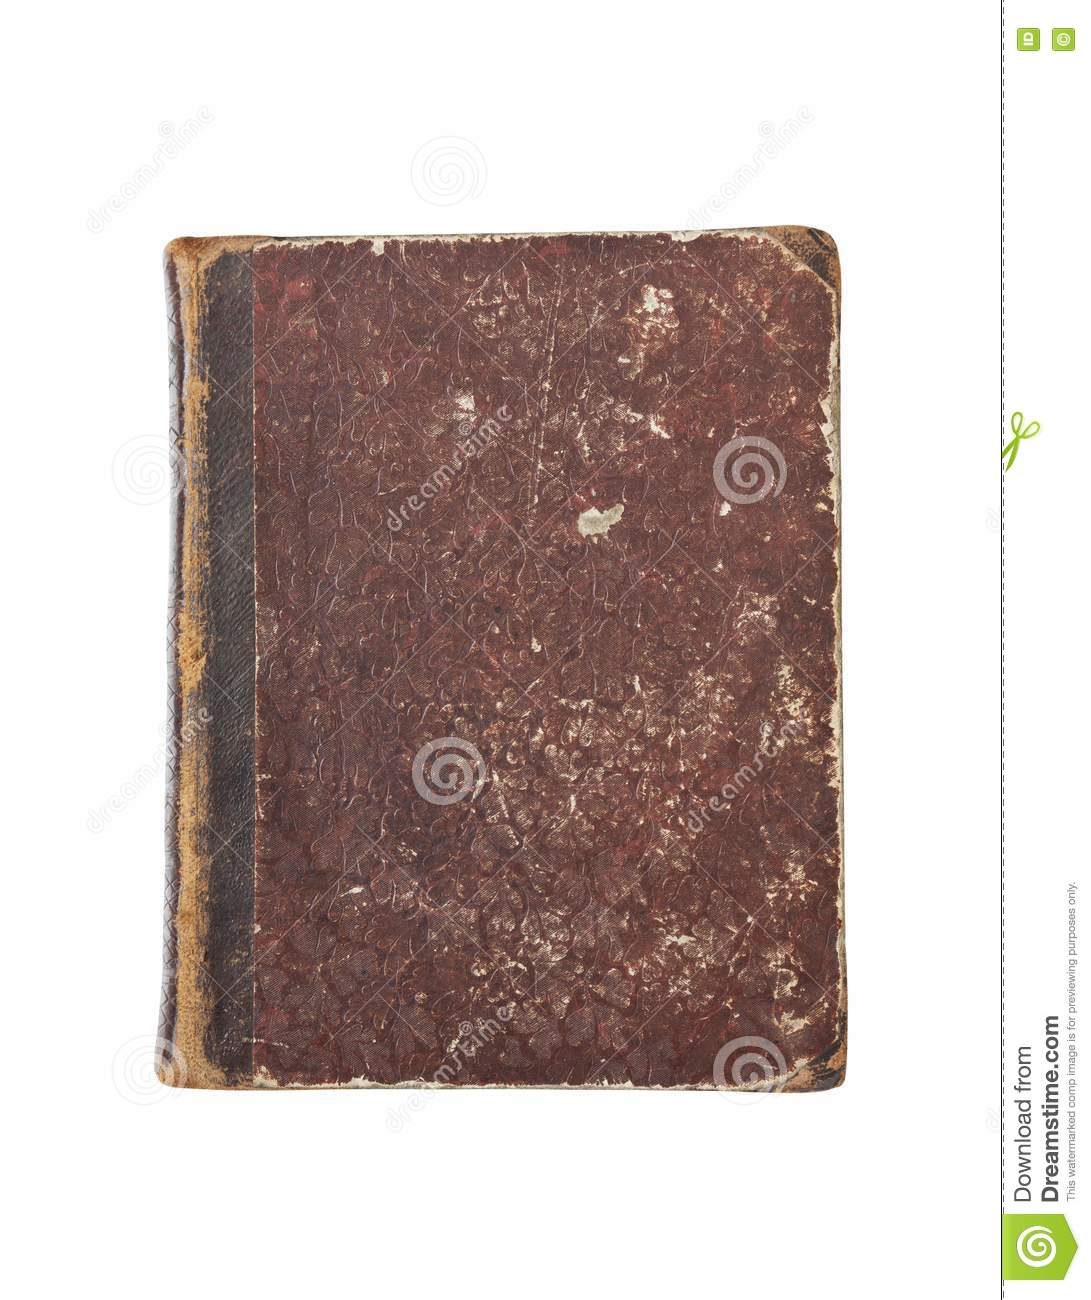 Book Cover Stock Art ~ Old book cover isolated royalty free stock photography